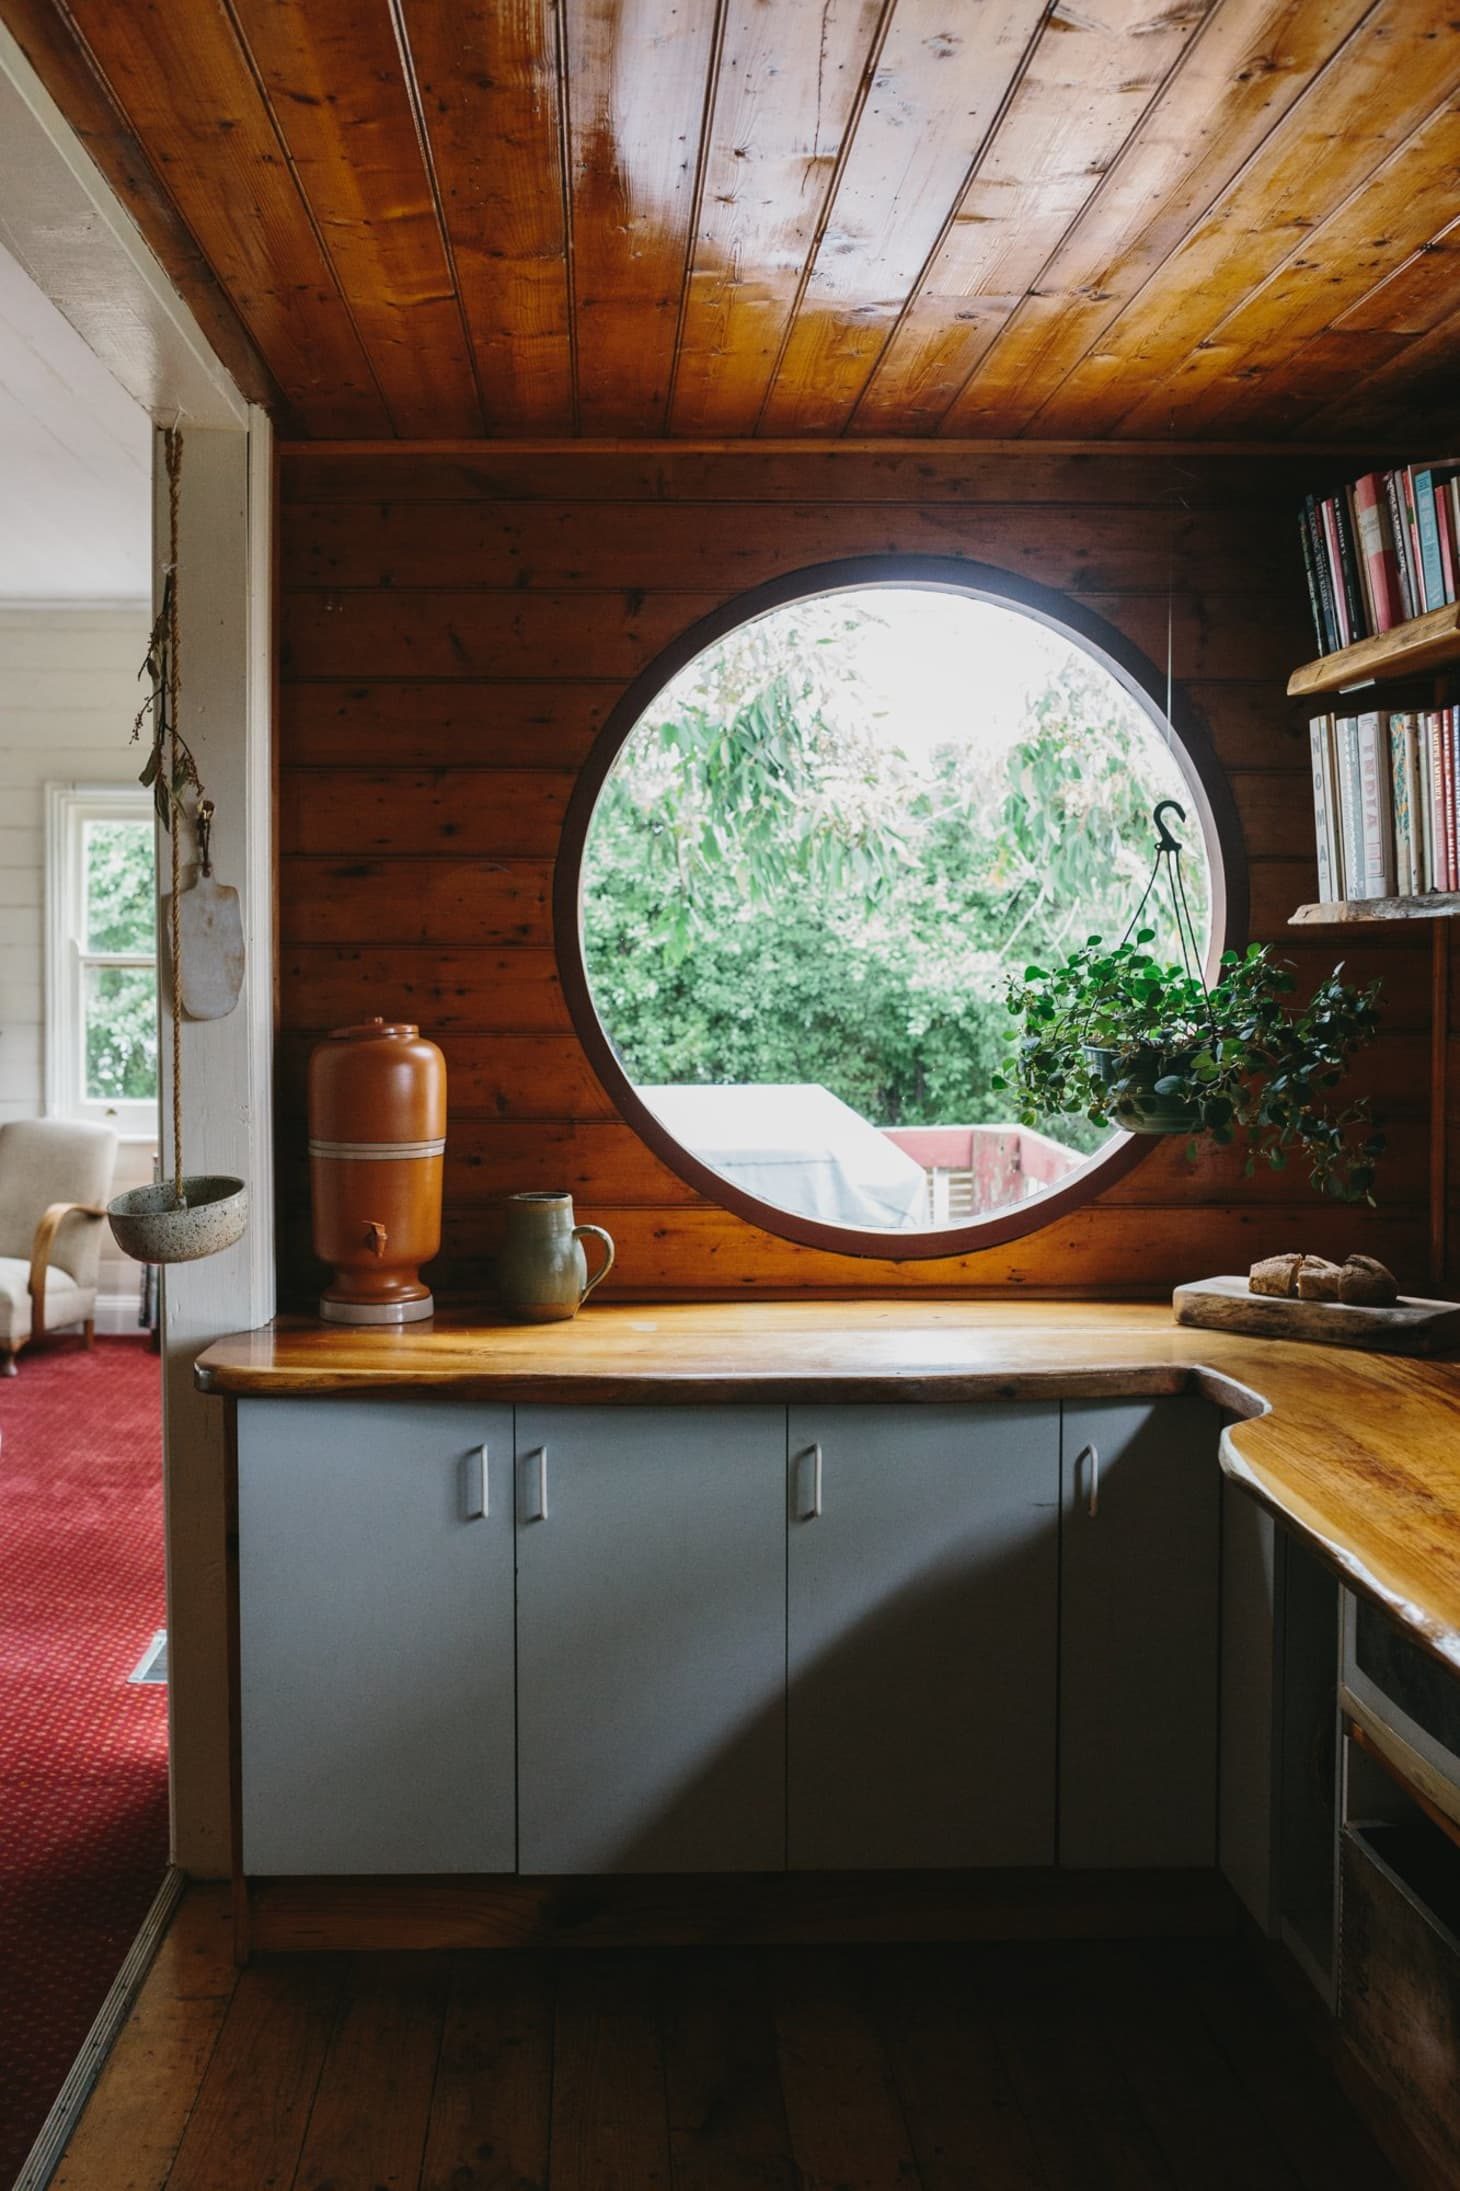 wood scandinavian kitchen with gray cabinets, large windows and open shelving